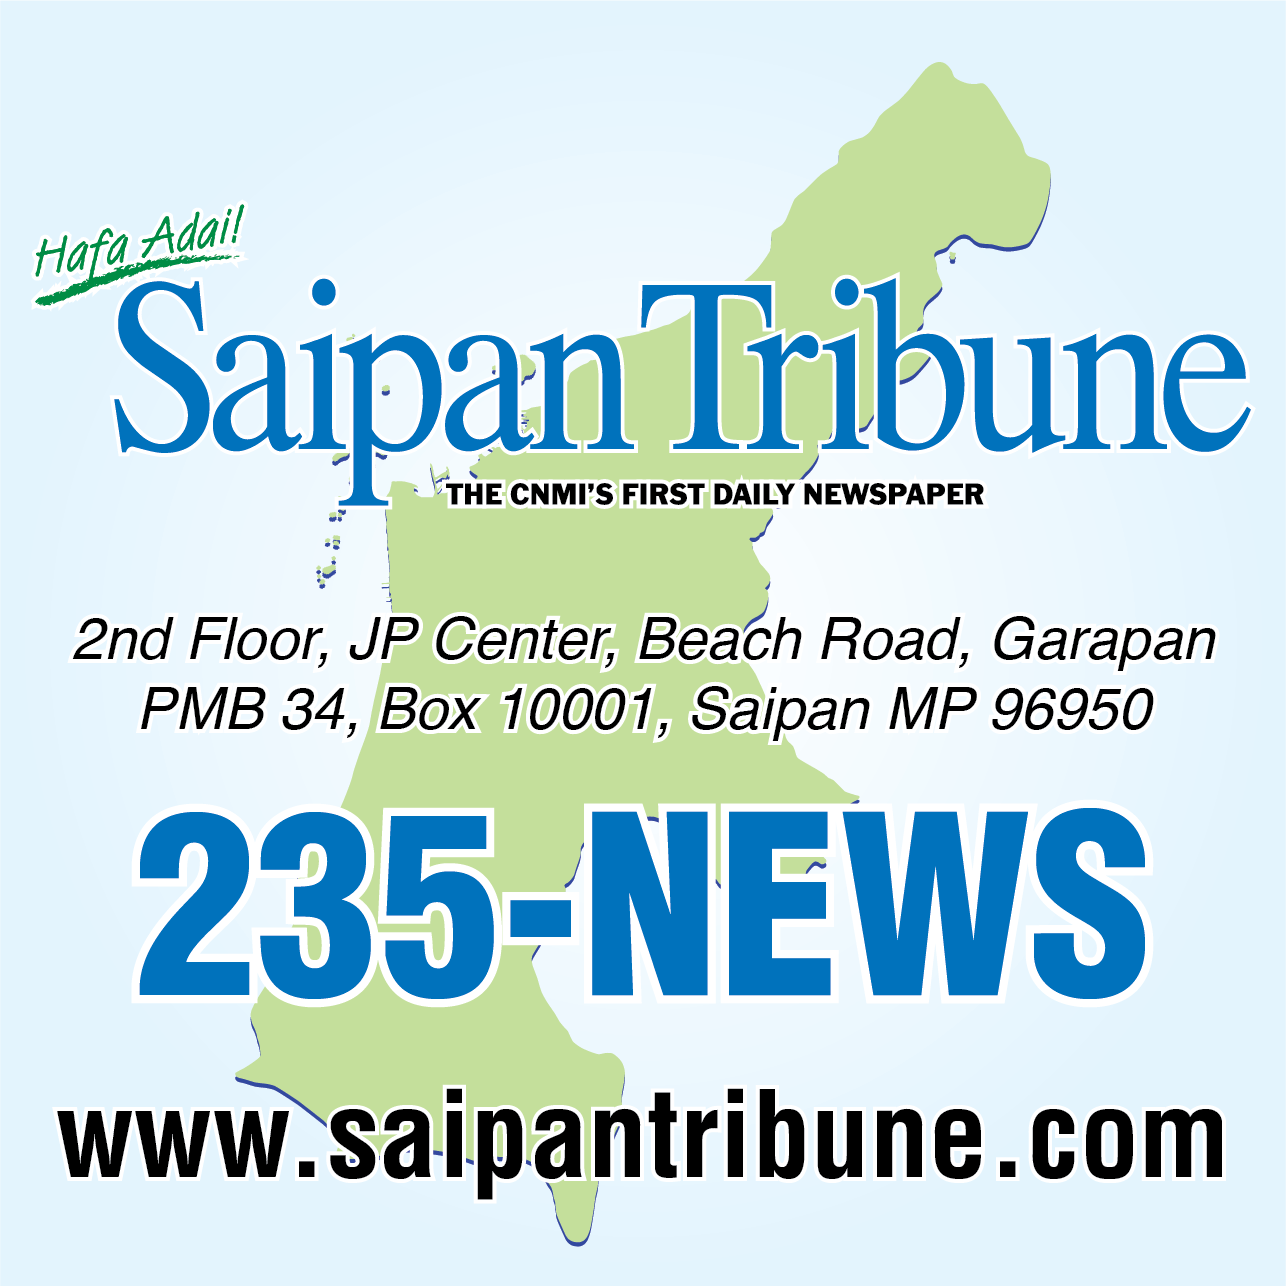 Saipan Tribune